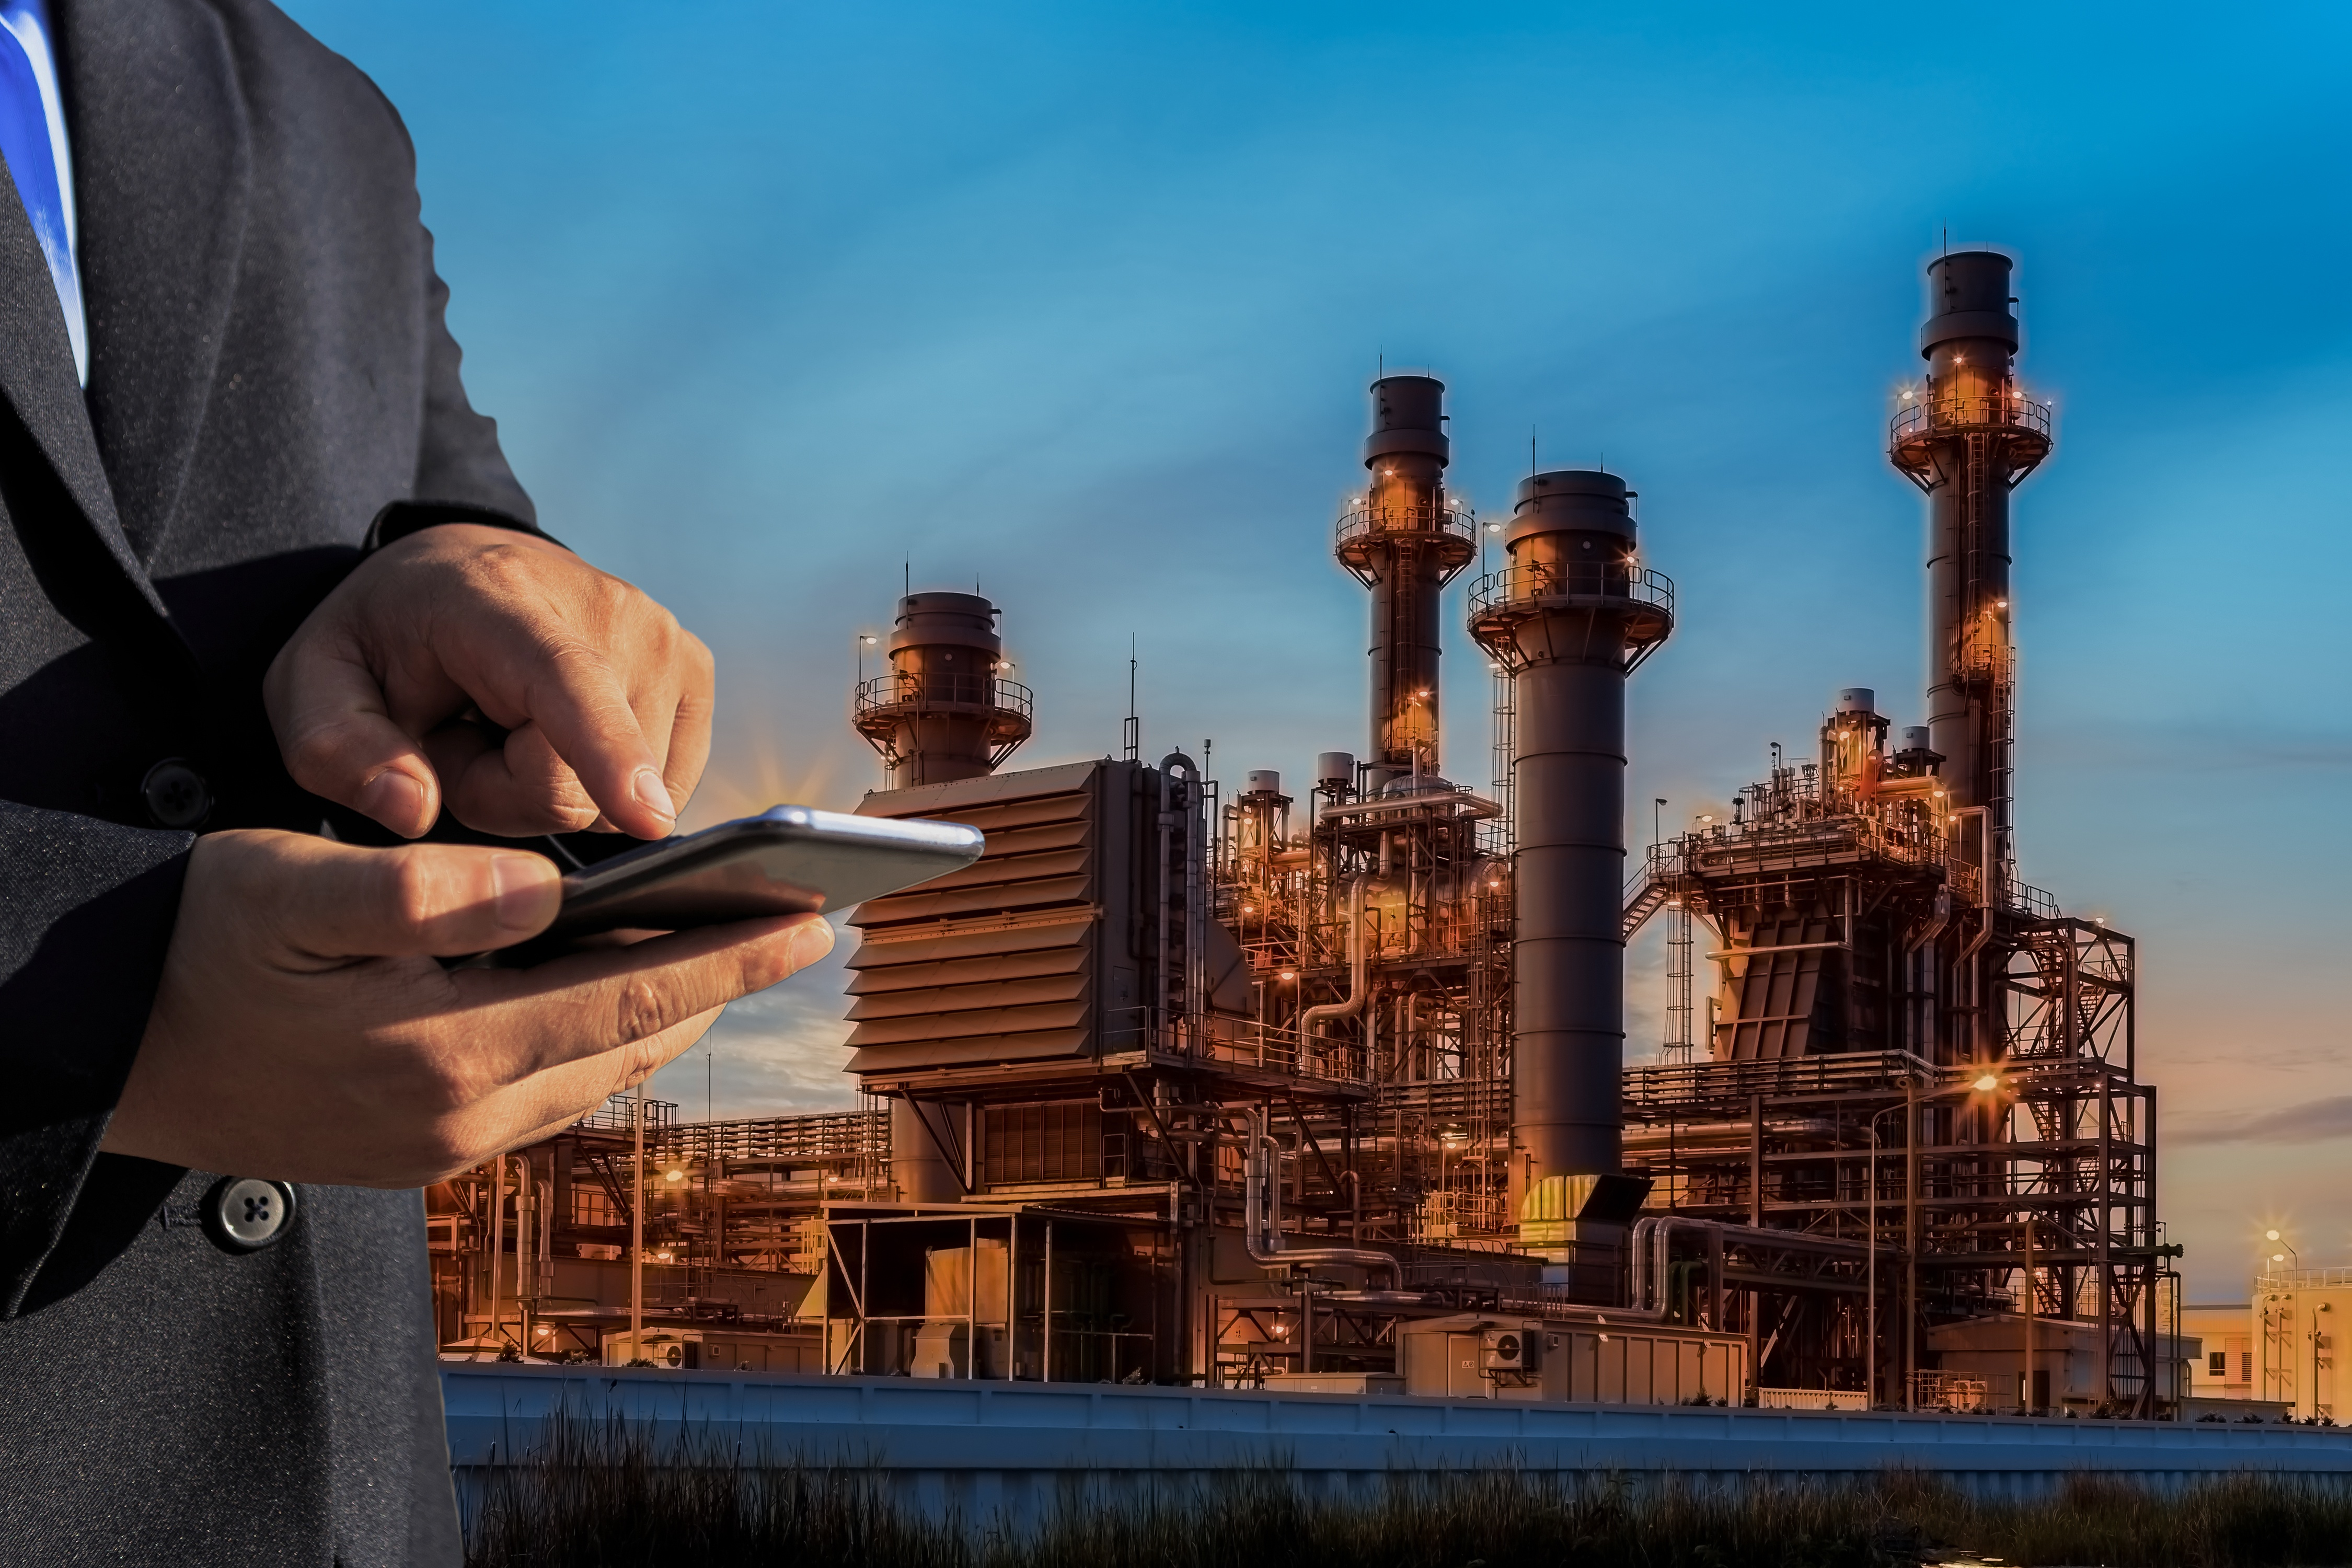 Read how mobile solutions can help rejuvenate the industry, and get links to some compelling mobile oil and gas industry apps.